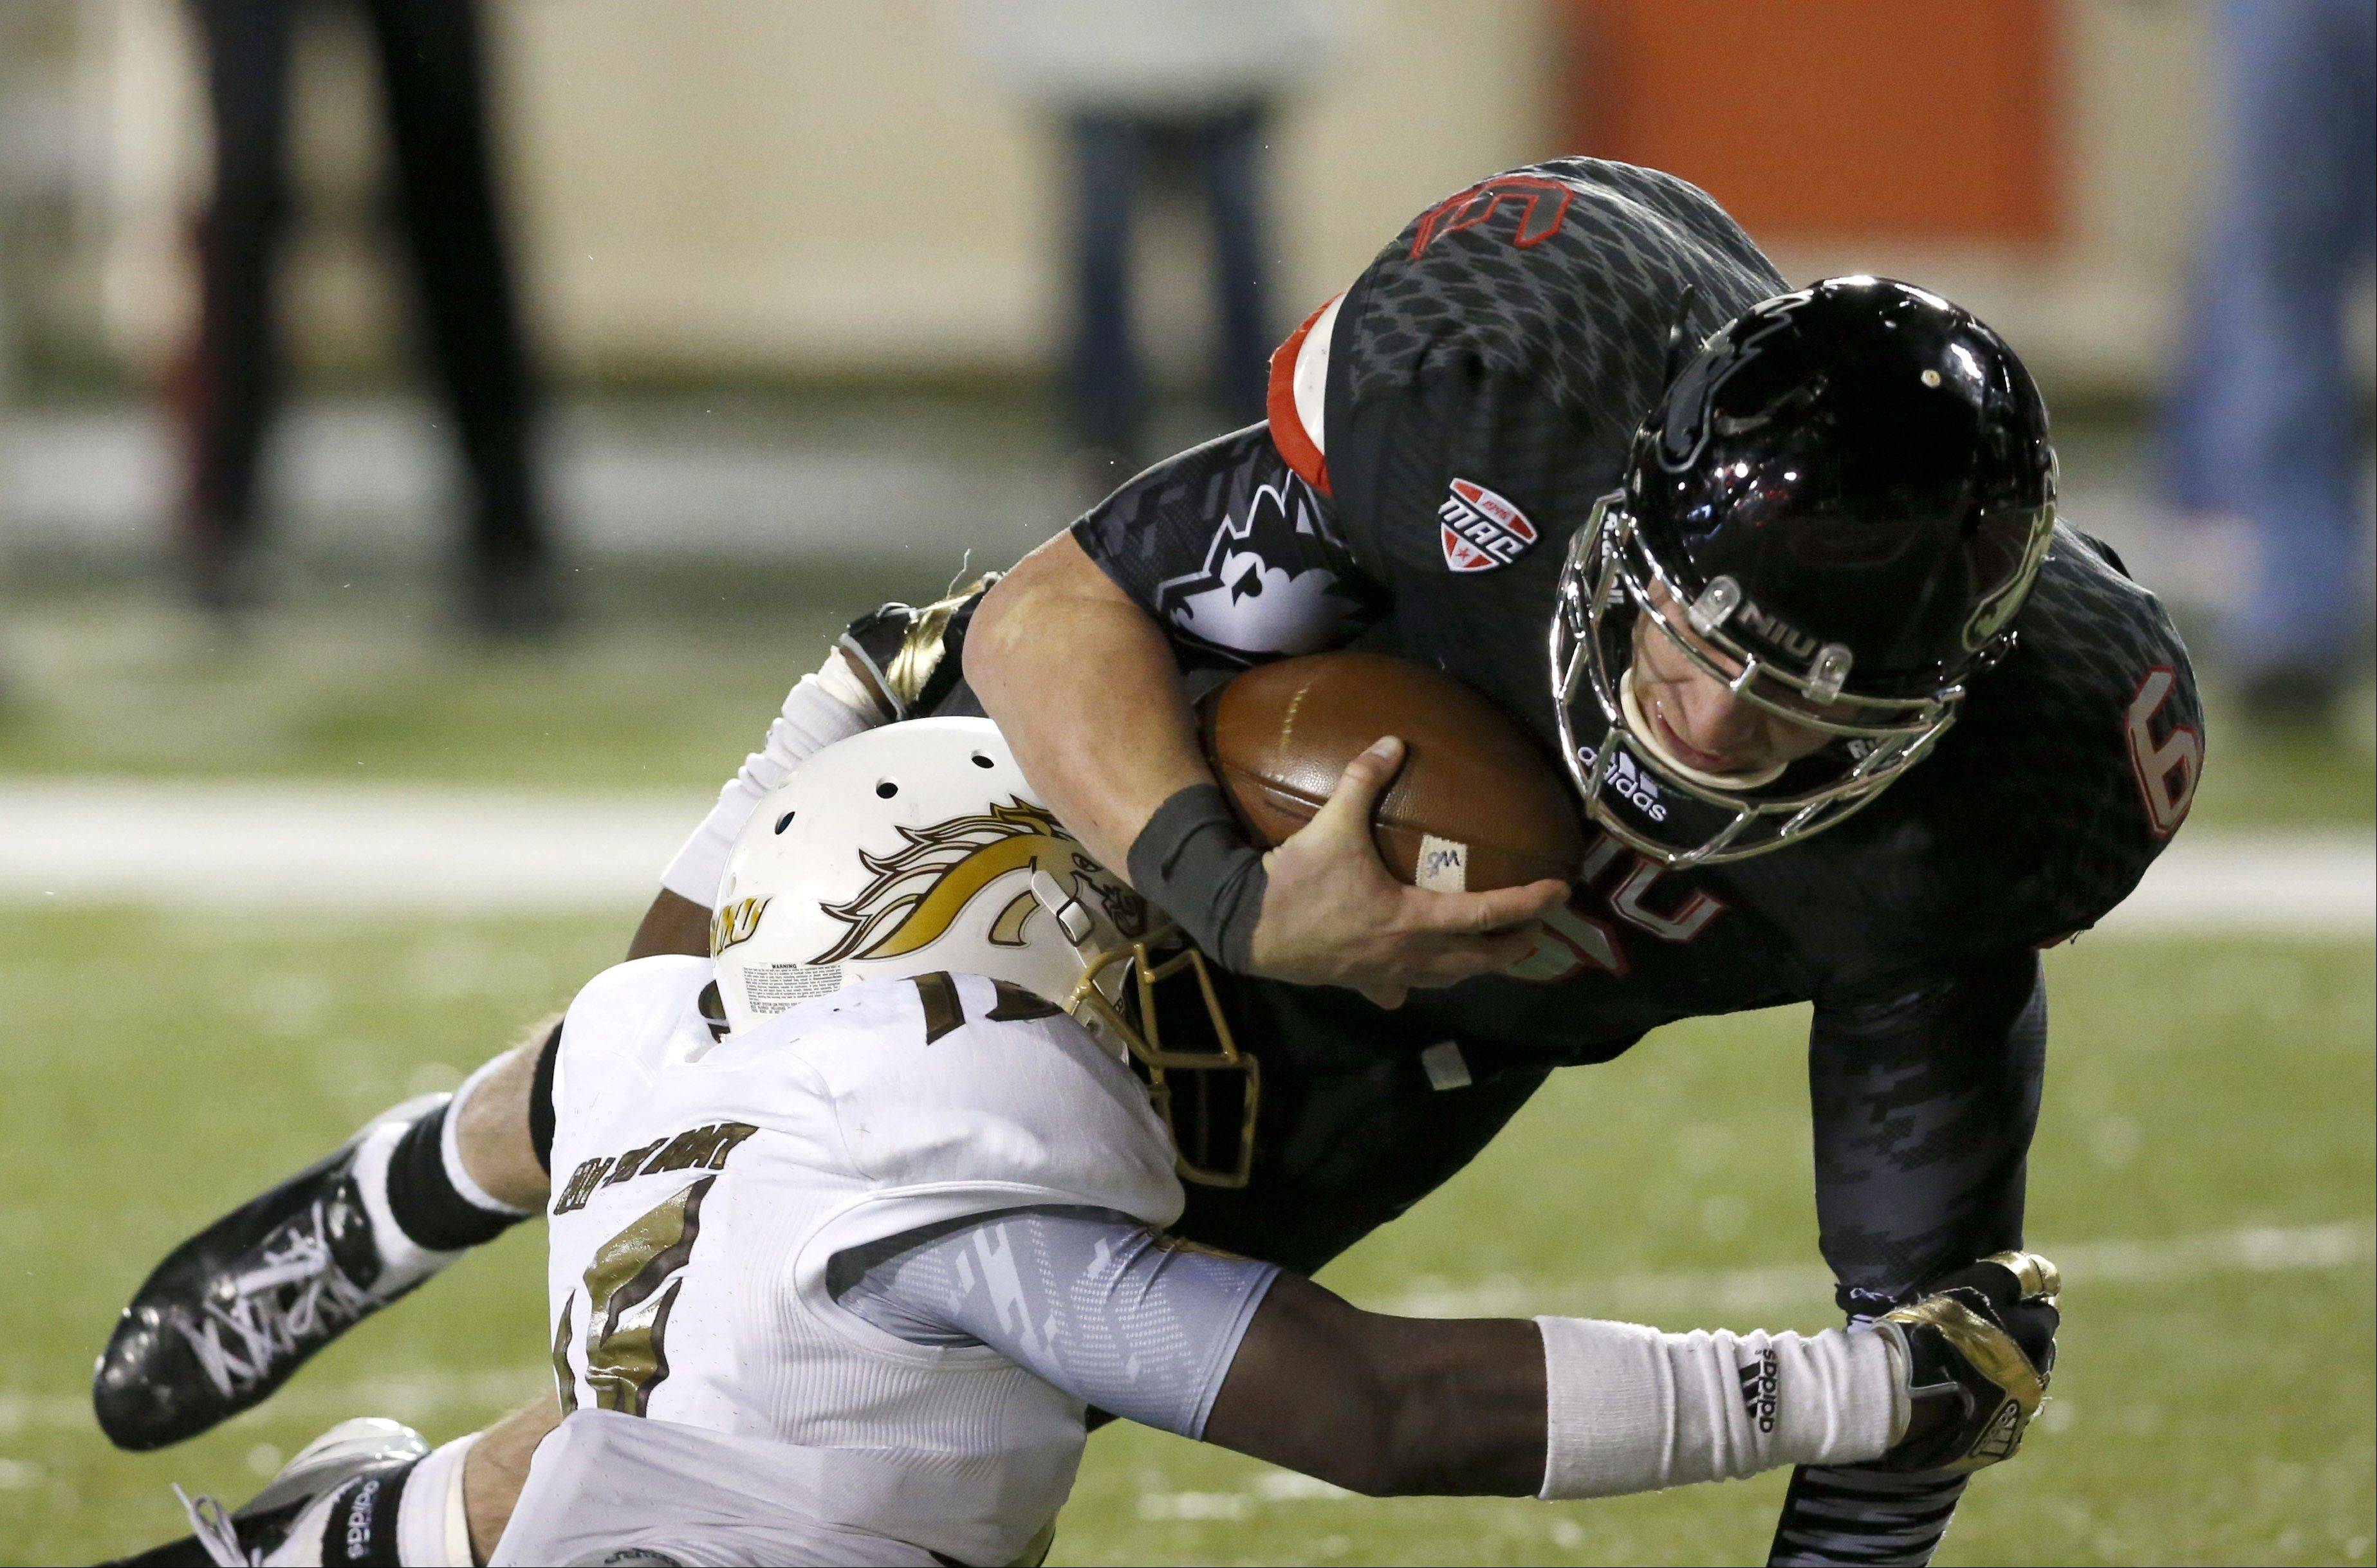 Northern Illinois quarterback Jordan Lynch, here scoring one of three rushing touchdowns he had over Western Michigan, earned his eighth MAC player of the week honor.